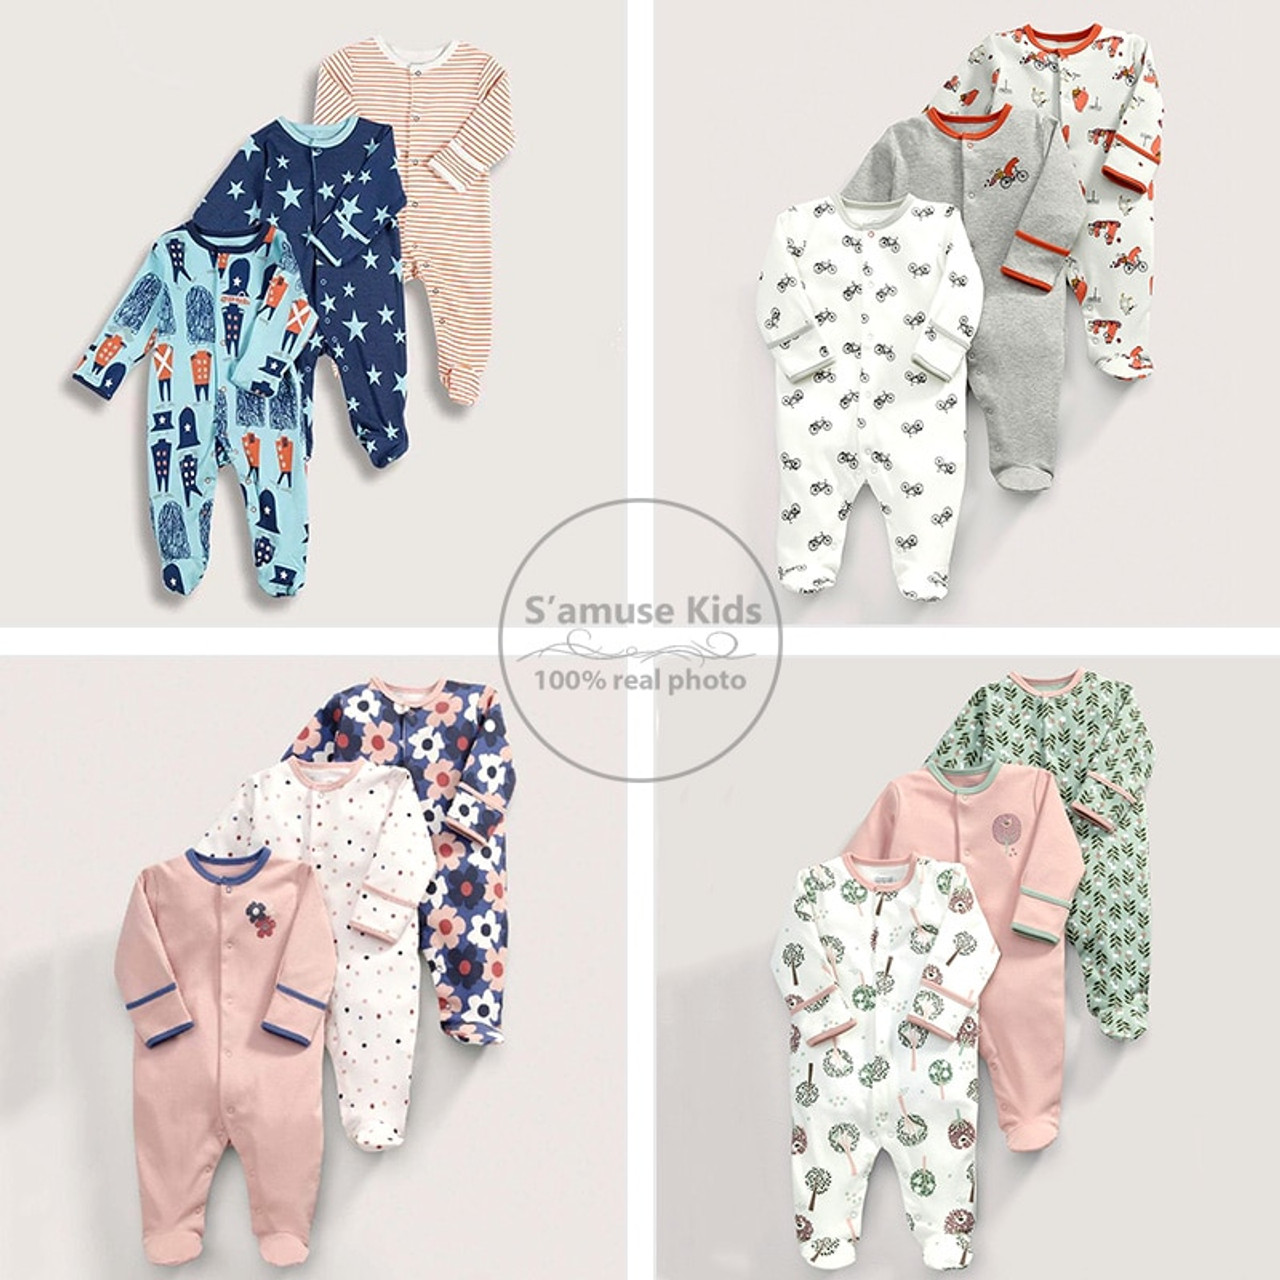 047754cba2b59 ... 3pcs Newborn Baby Girl Clothes Cotton Baby Rompers Children's Fashion  vetement enfant fille Kid Winter Jumpsuit ...